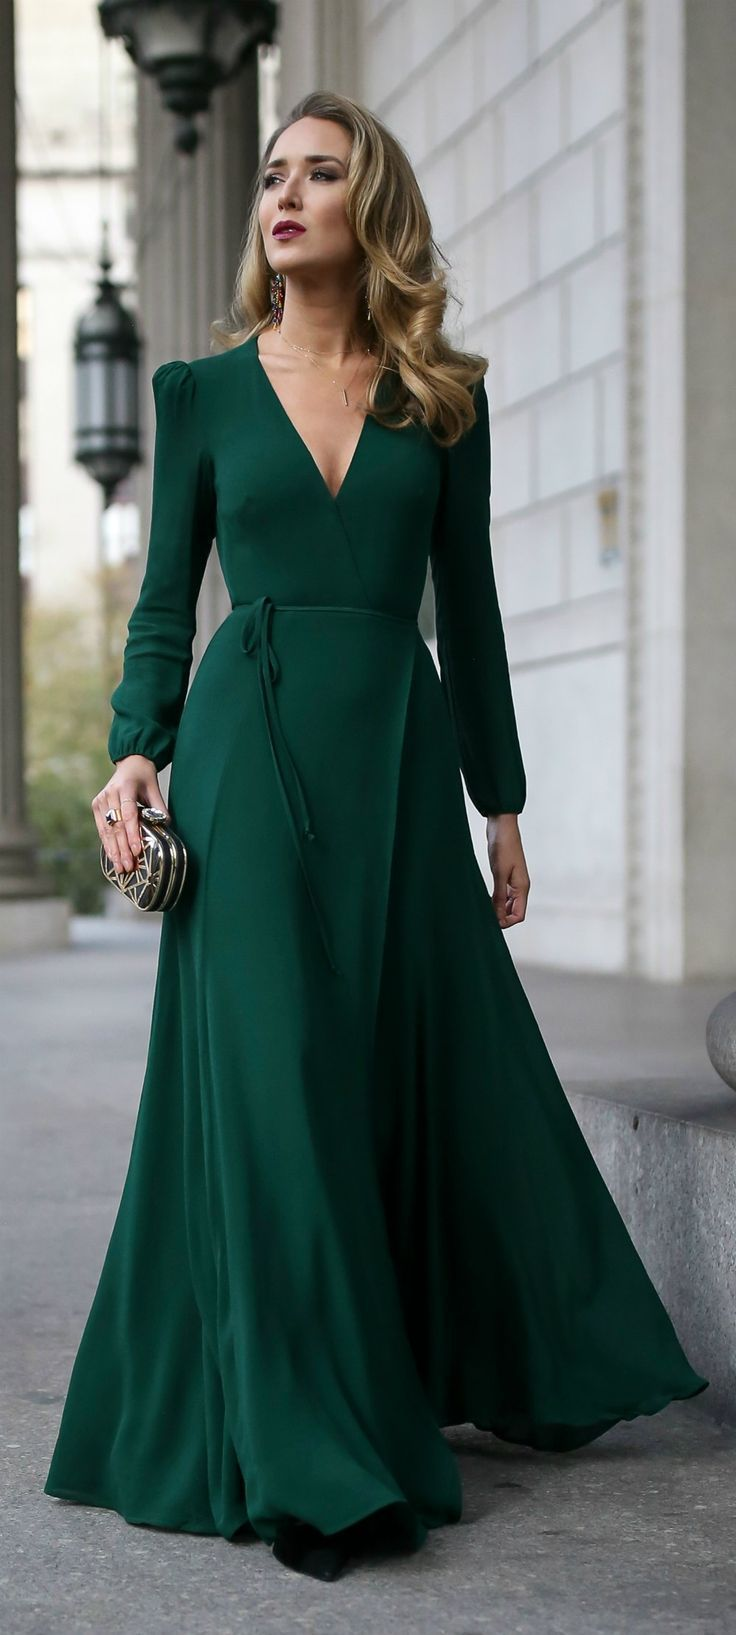 Click for outfit details! // Emerald green long-sleeve floor-length wrap dress, …